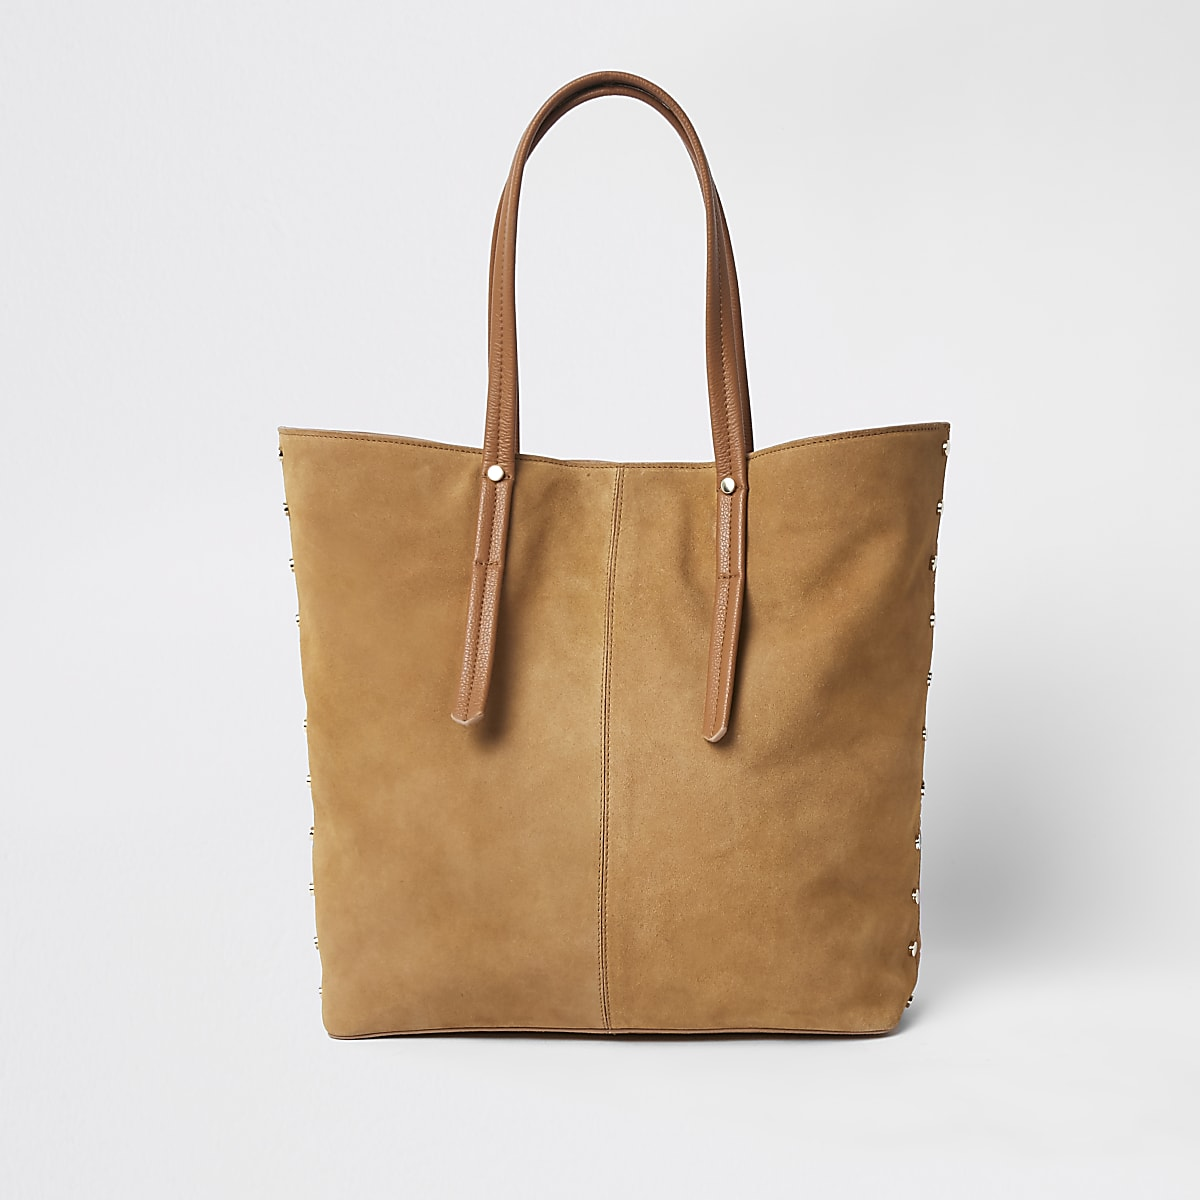 Beige suede leather handle shopper bag